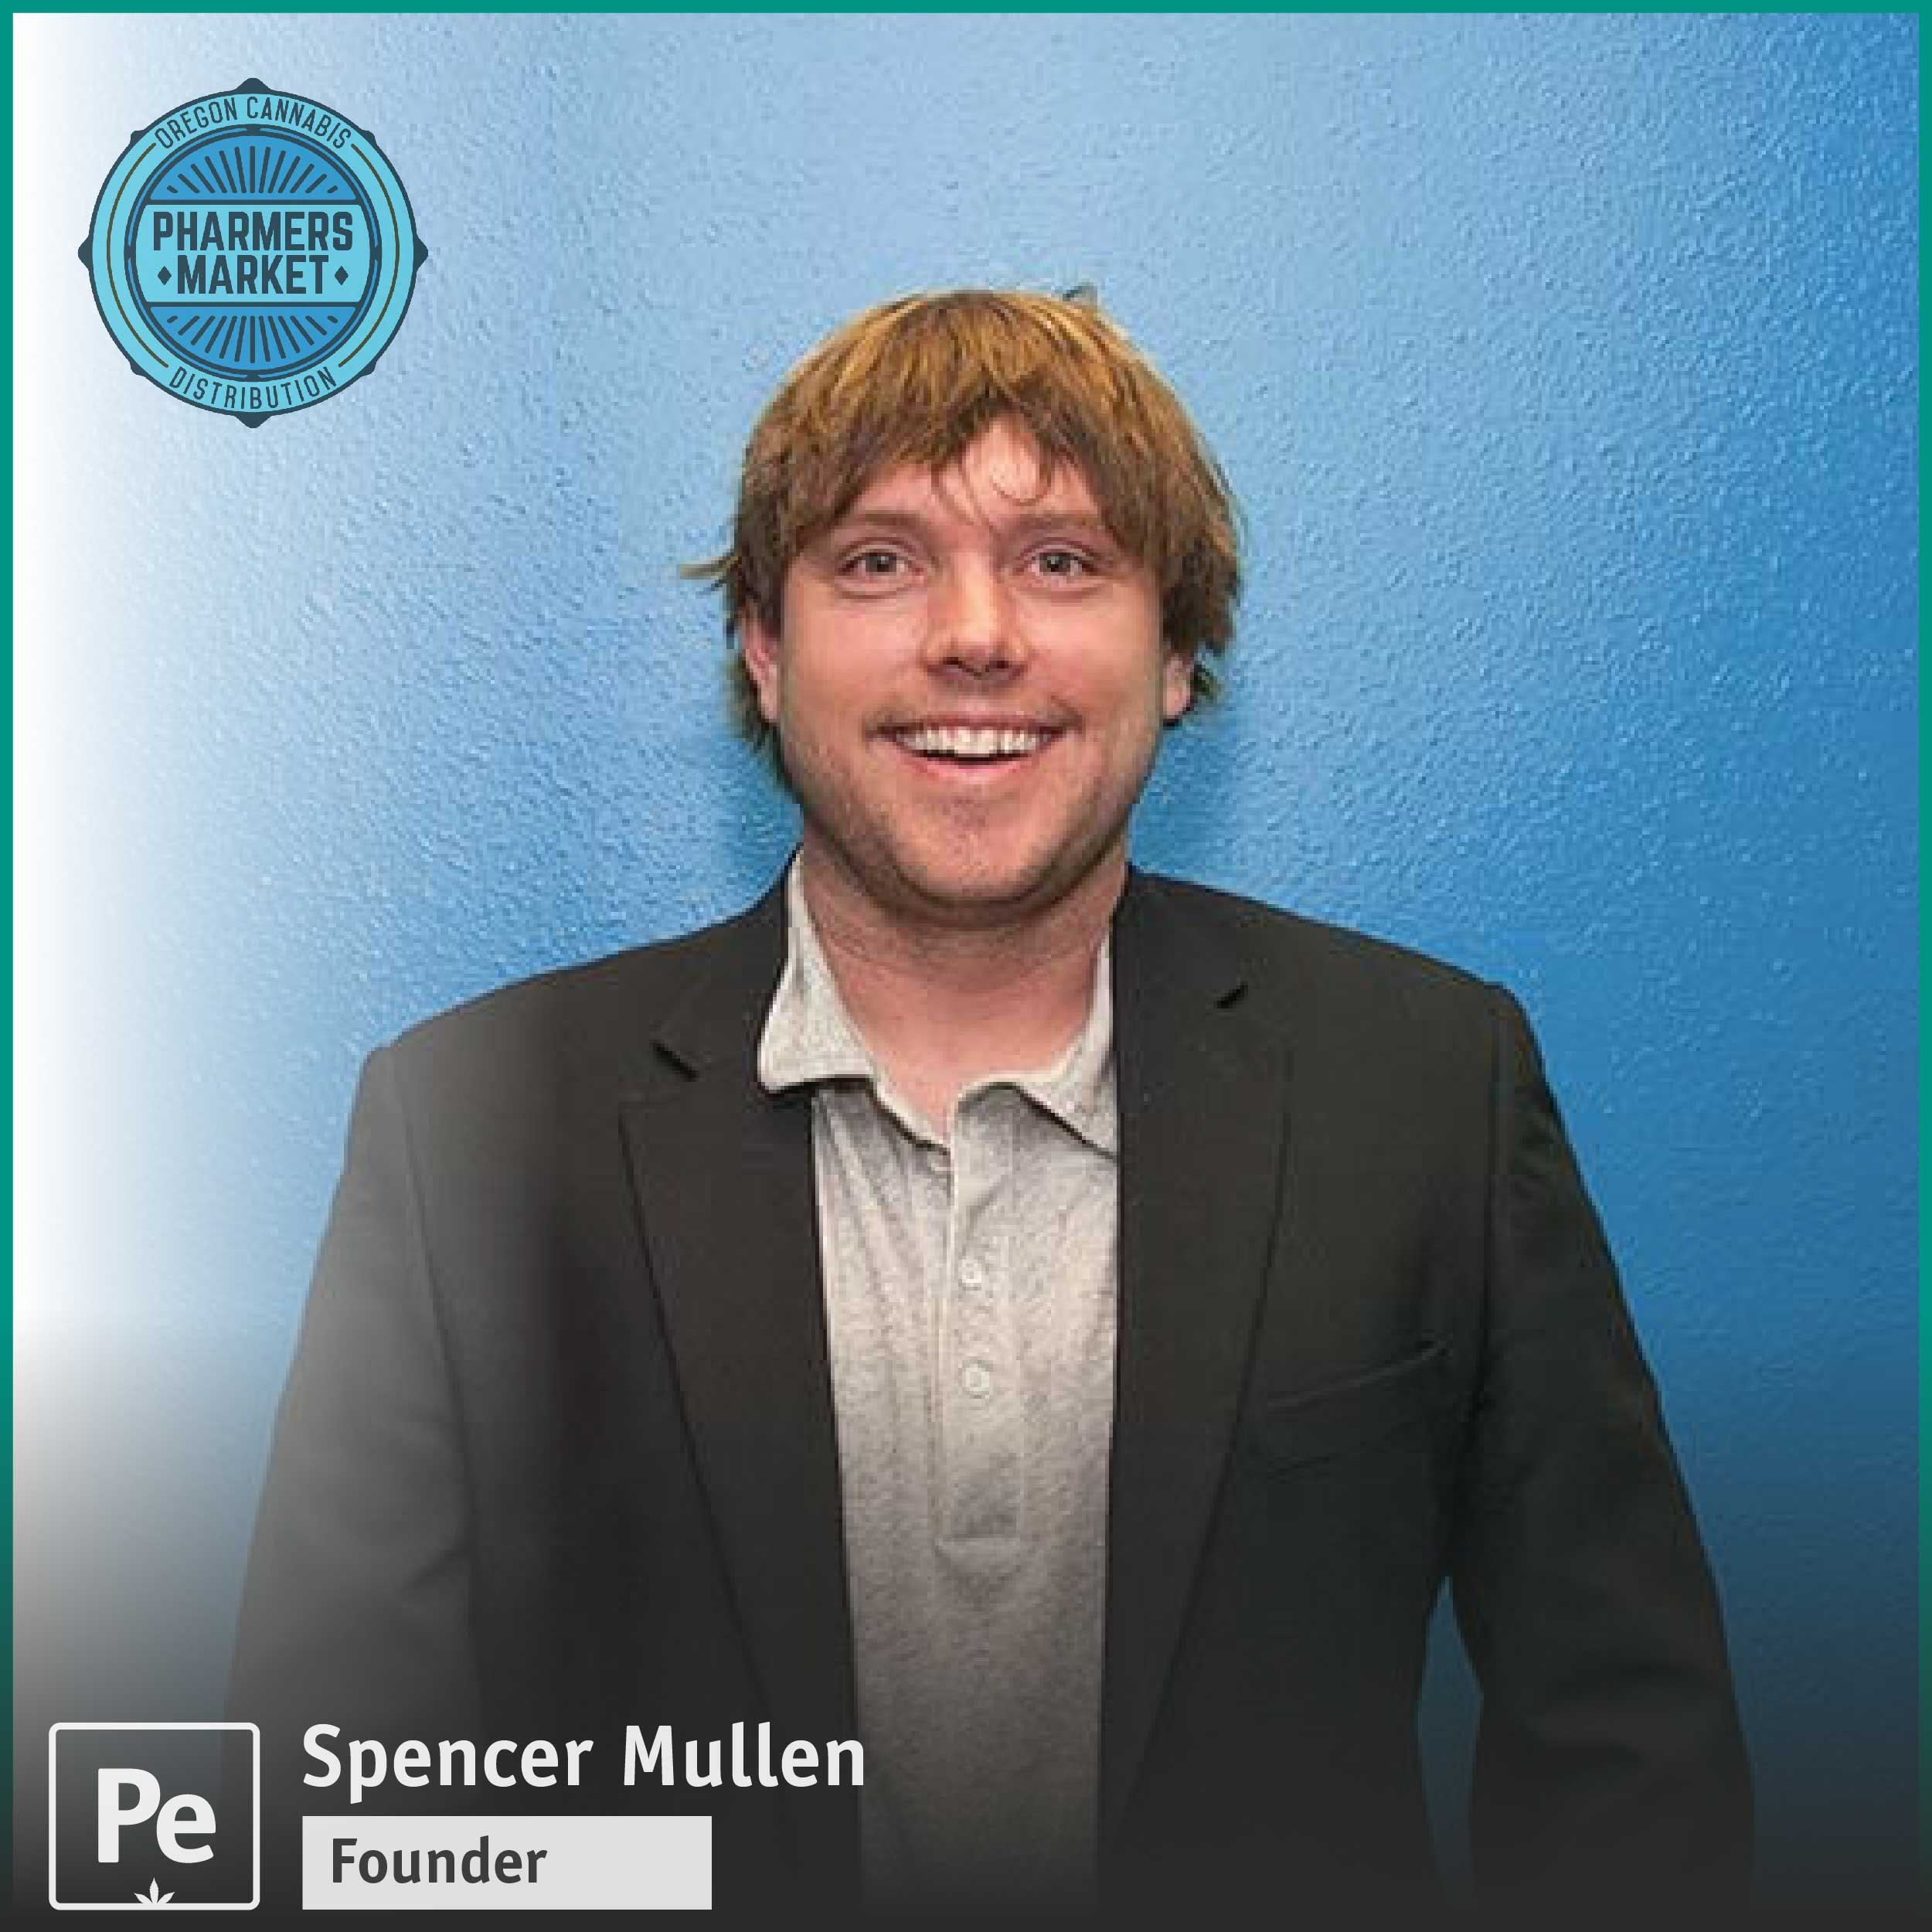 Spencer Mullen, Founder and CEO of Pharmers Market, a cannabis distribution wholesale business in Oregon